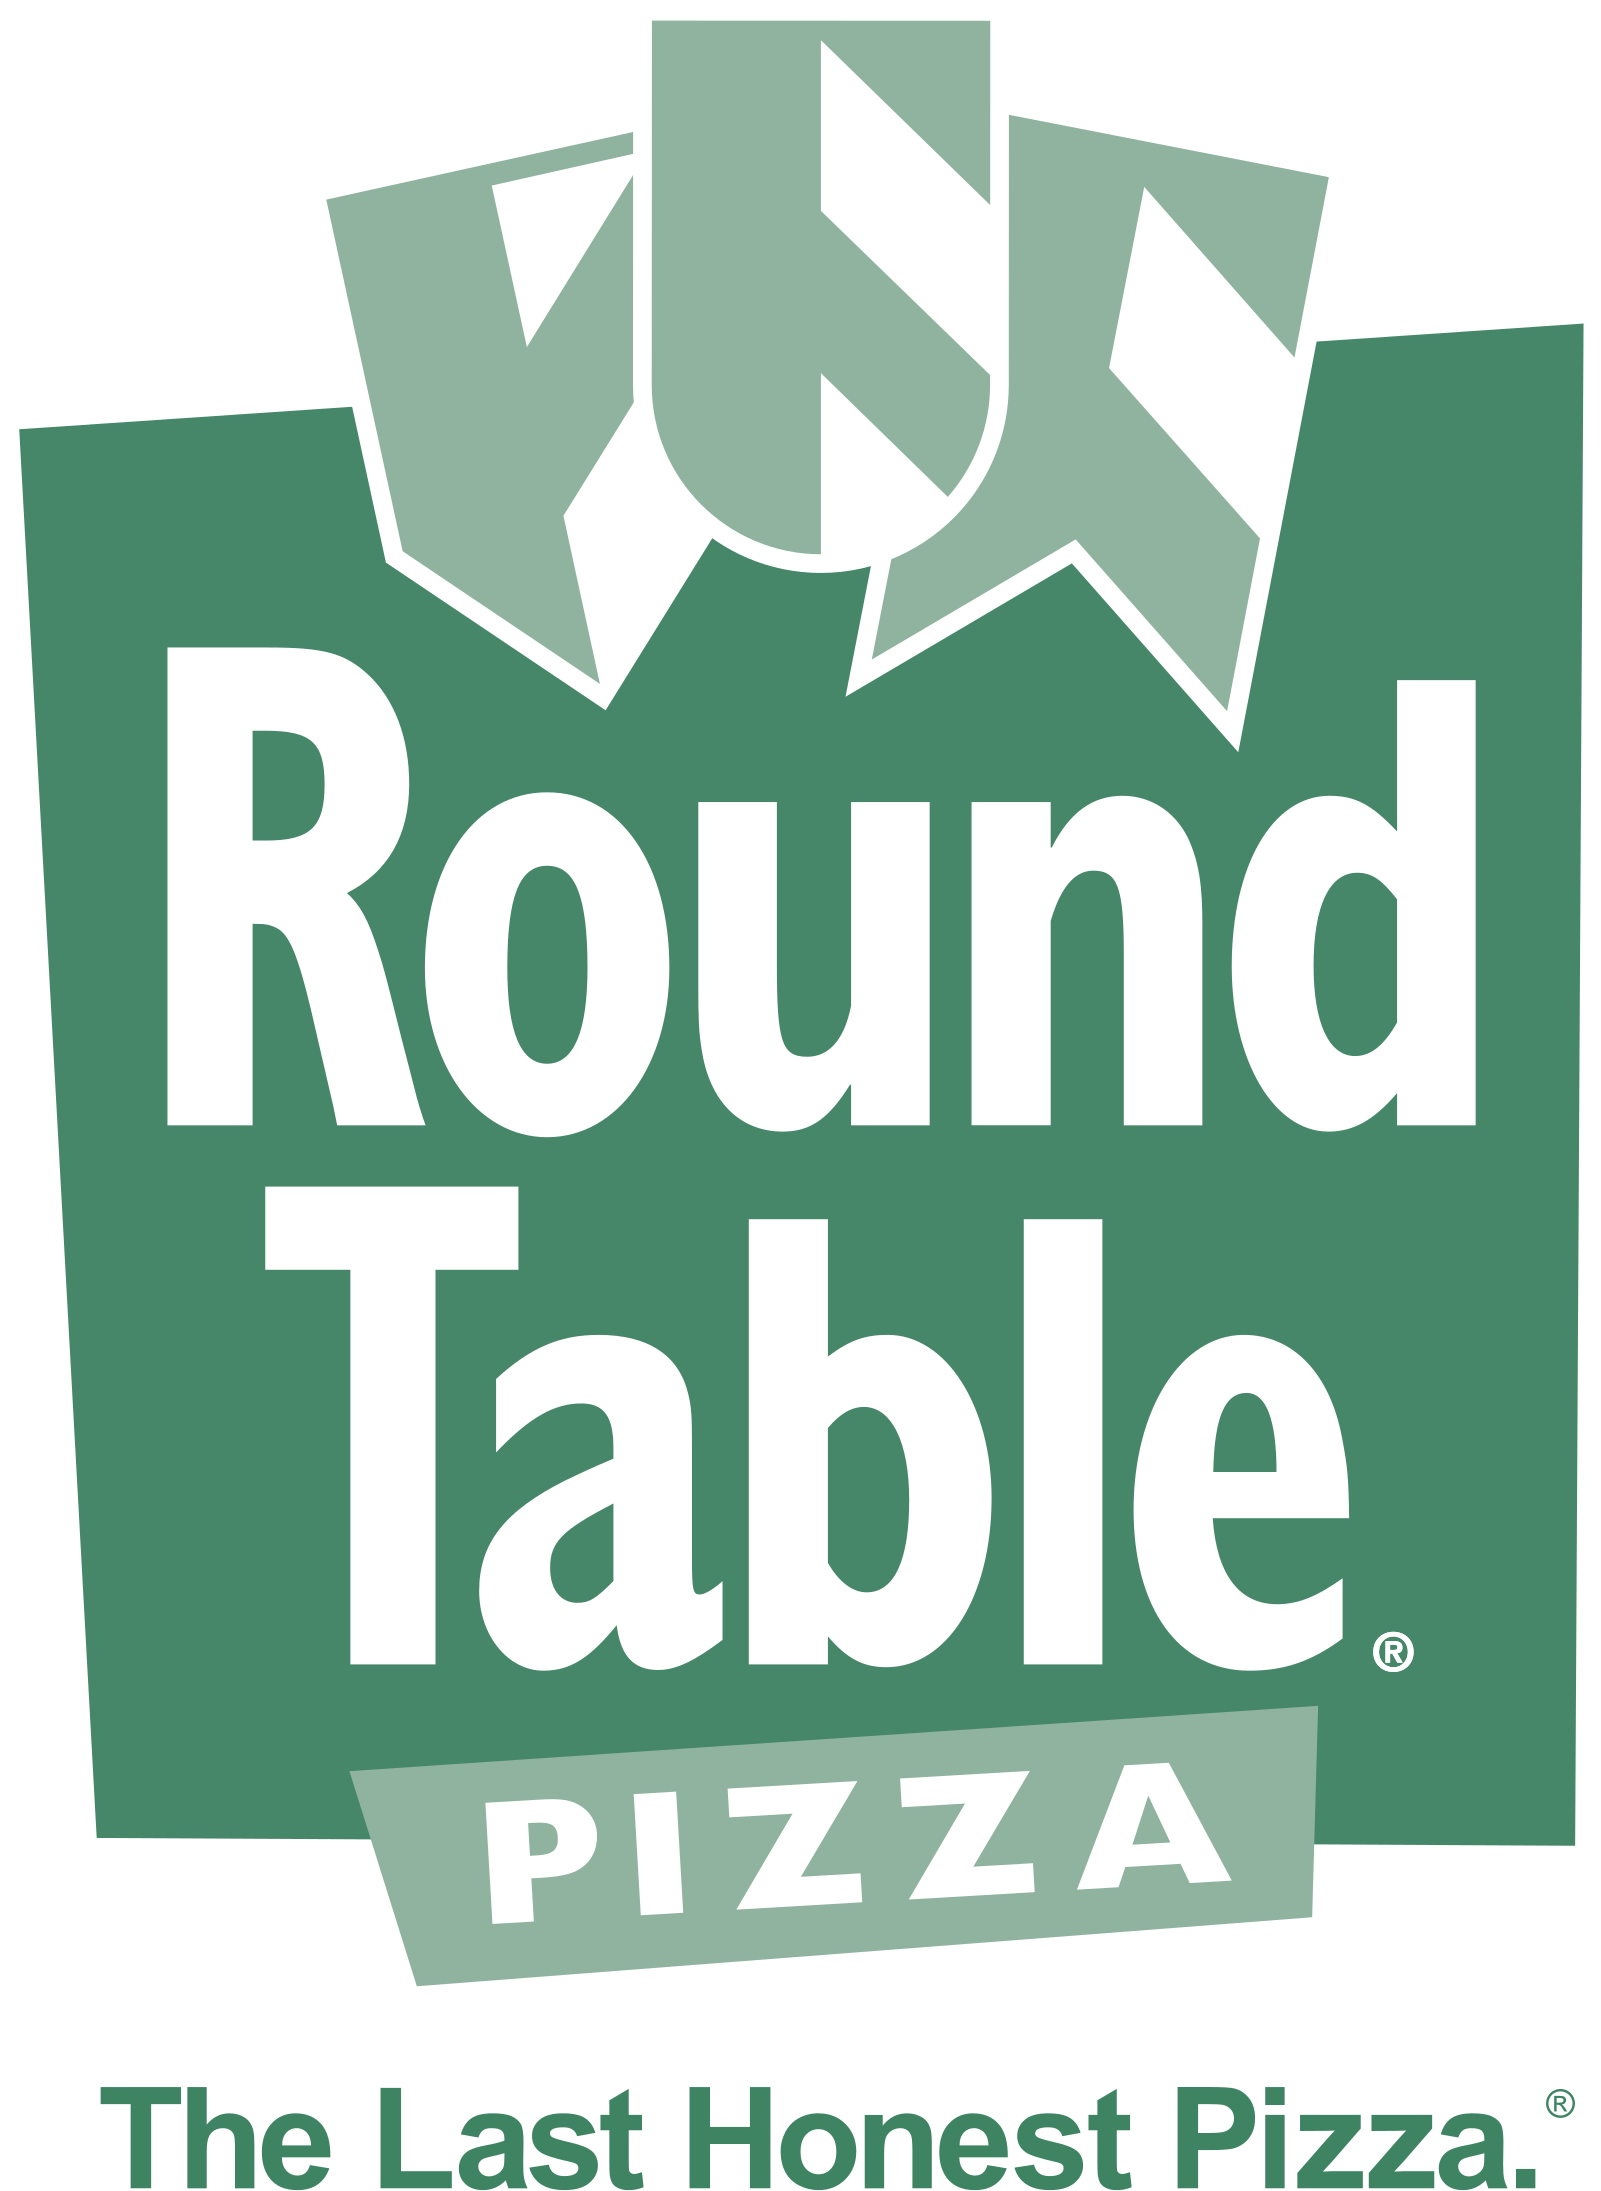 Round Table Pizza Logo Png Transparent.